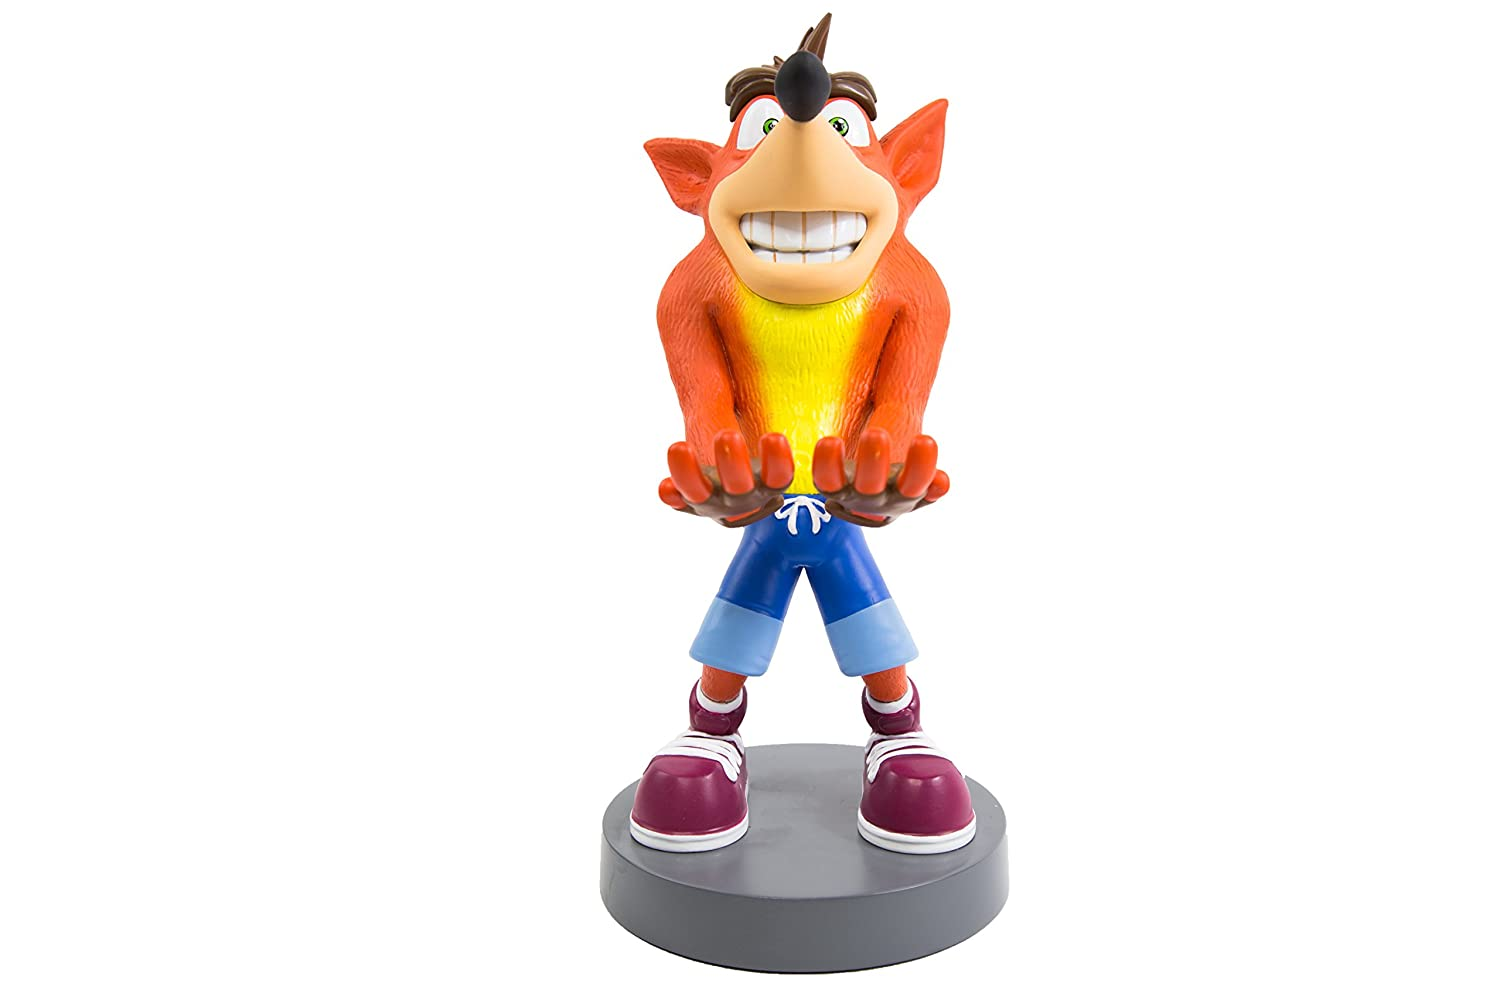 Crash Bandicoot Cable Guy Crash Bandicoot 20 cm Exquisite Gaming Adattatori CGACT10001